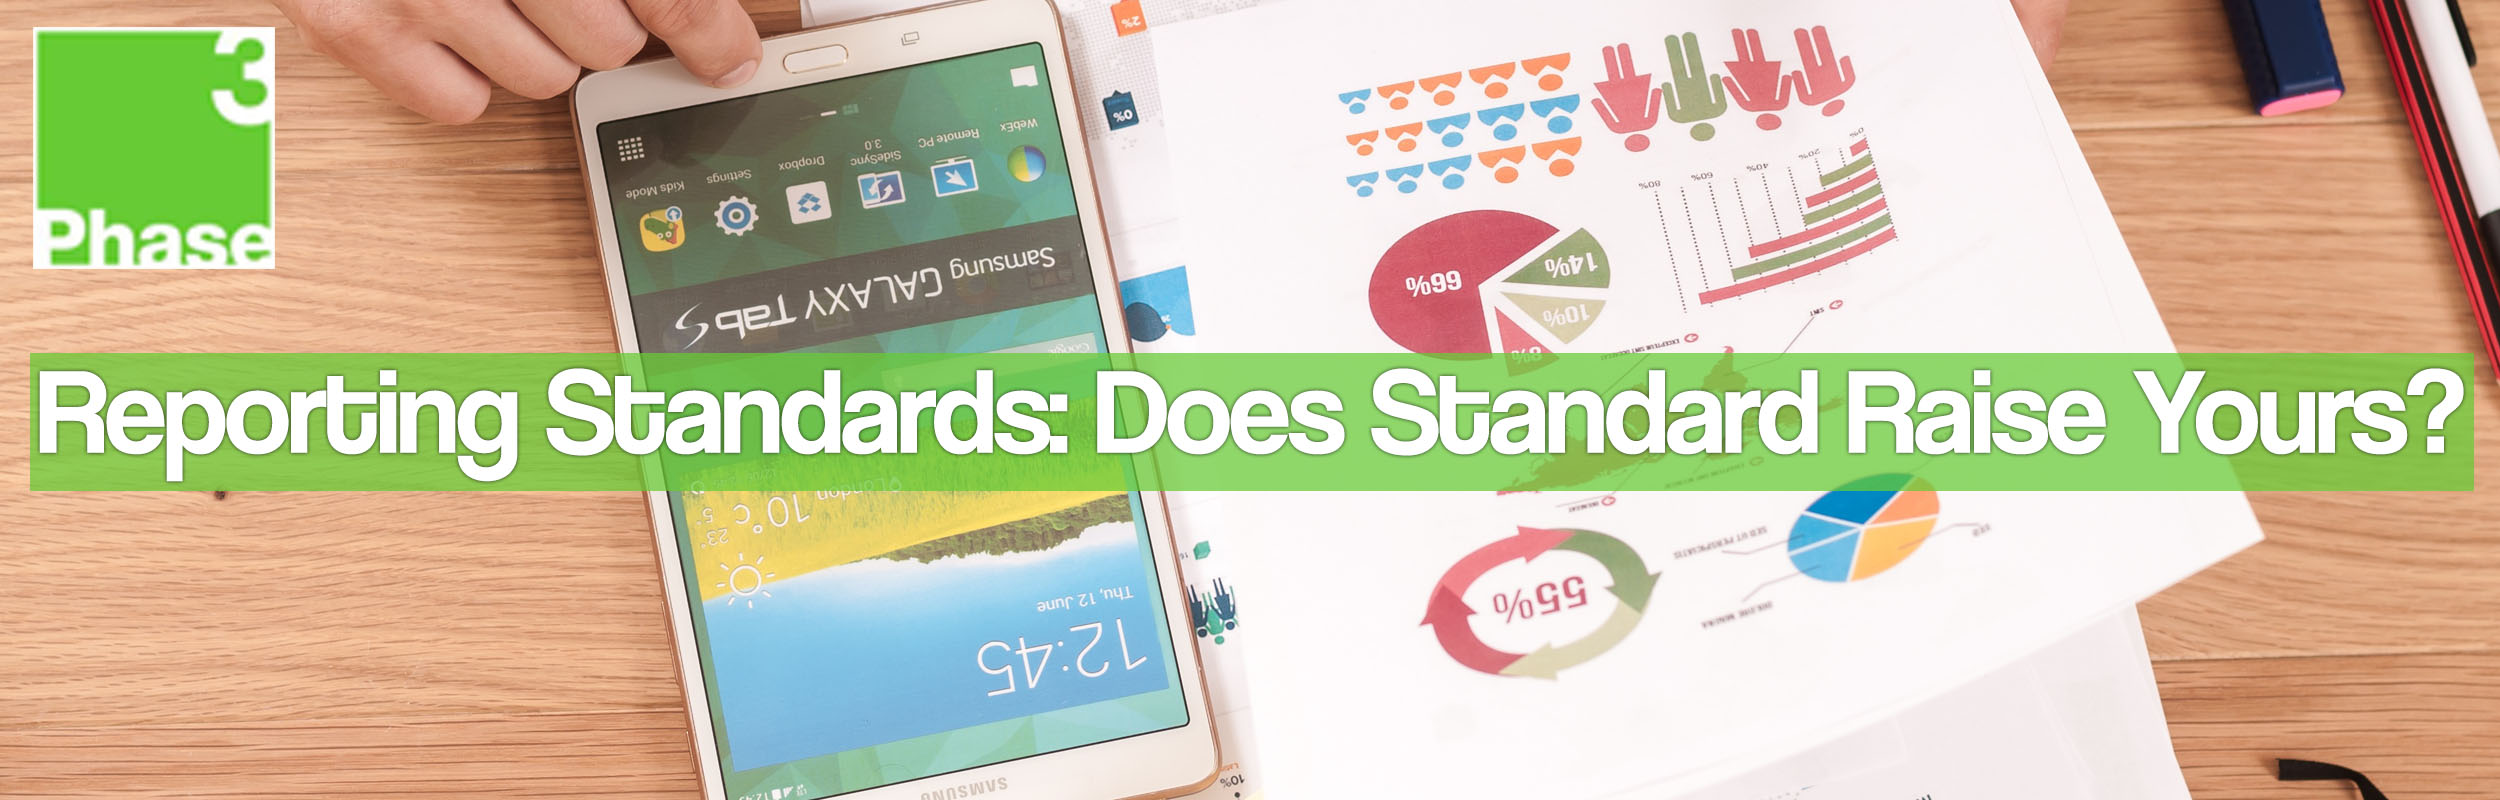 Reporting Standards: Does Standard Raise Yours?